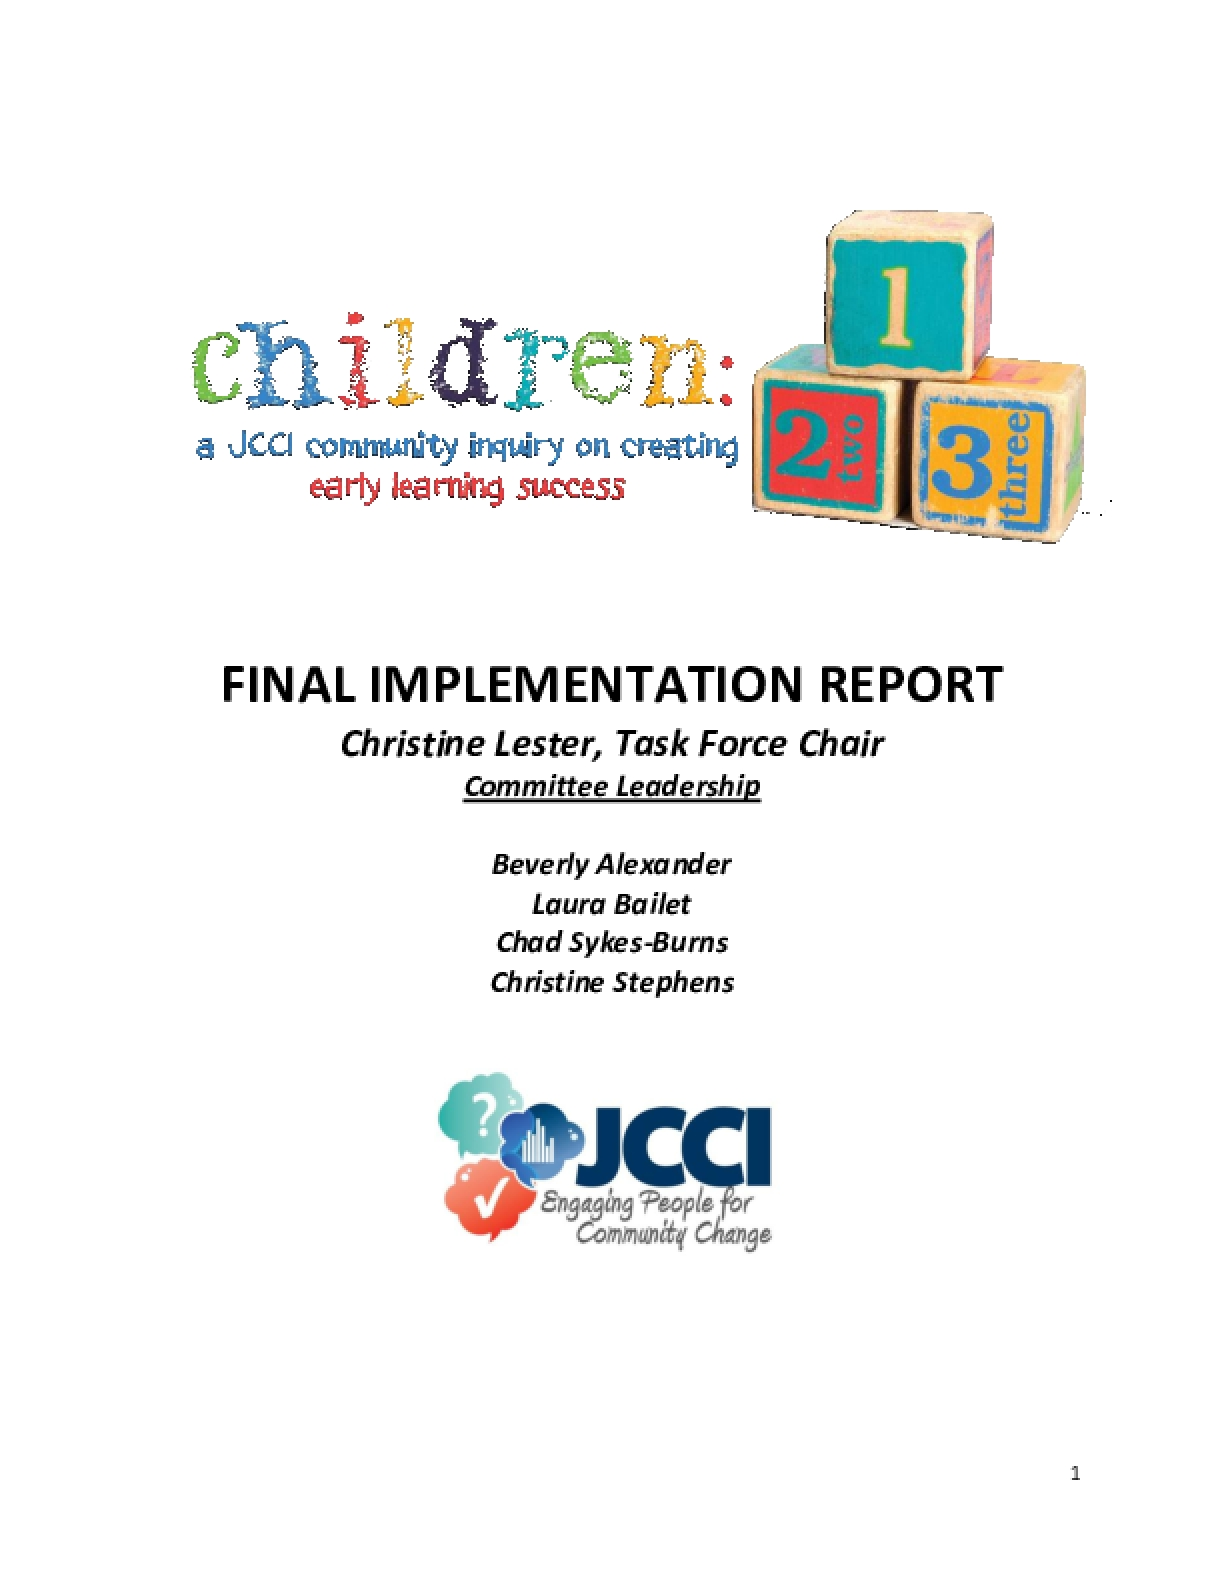 Children: A JCCI Community Inquiry on Creating Early Learning Success - Final Implementation Report